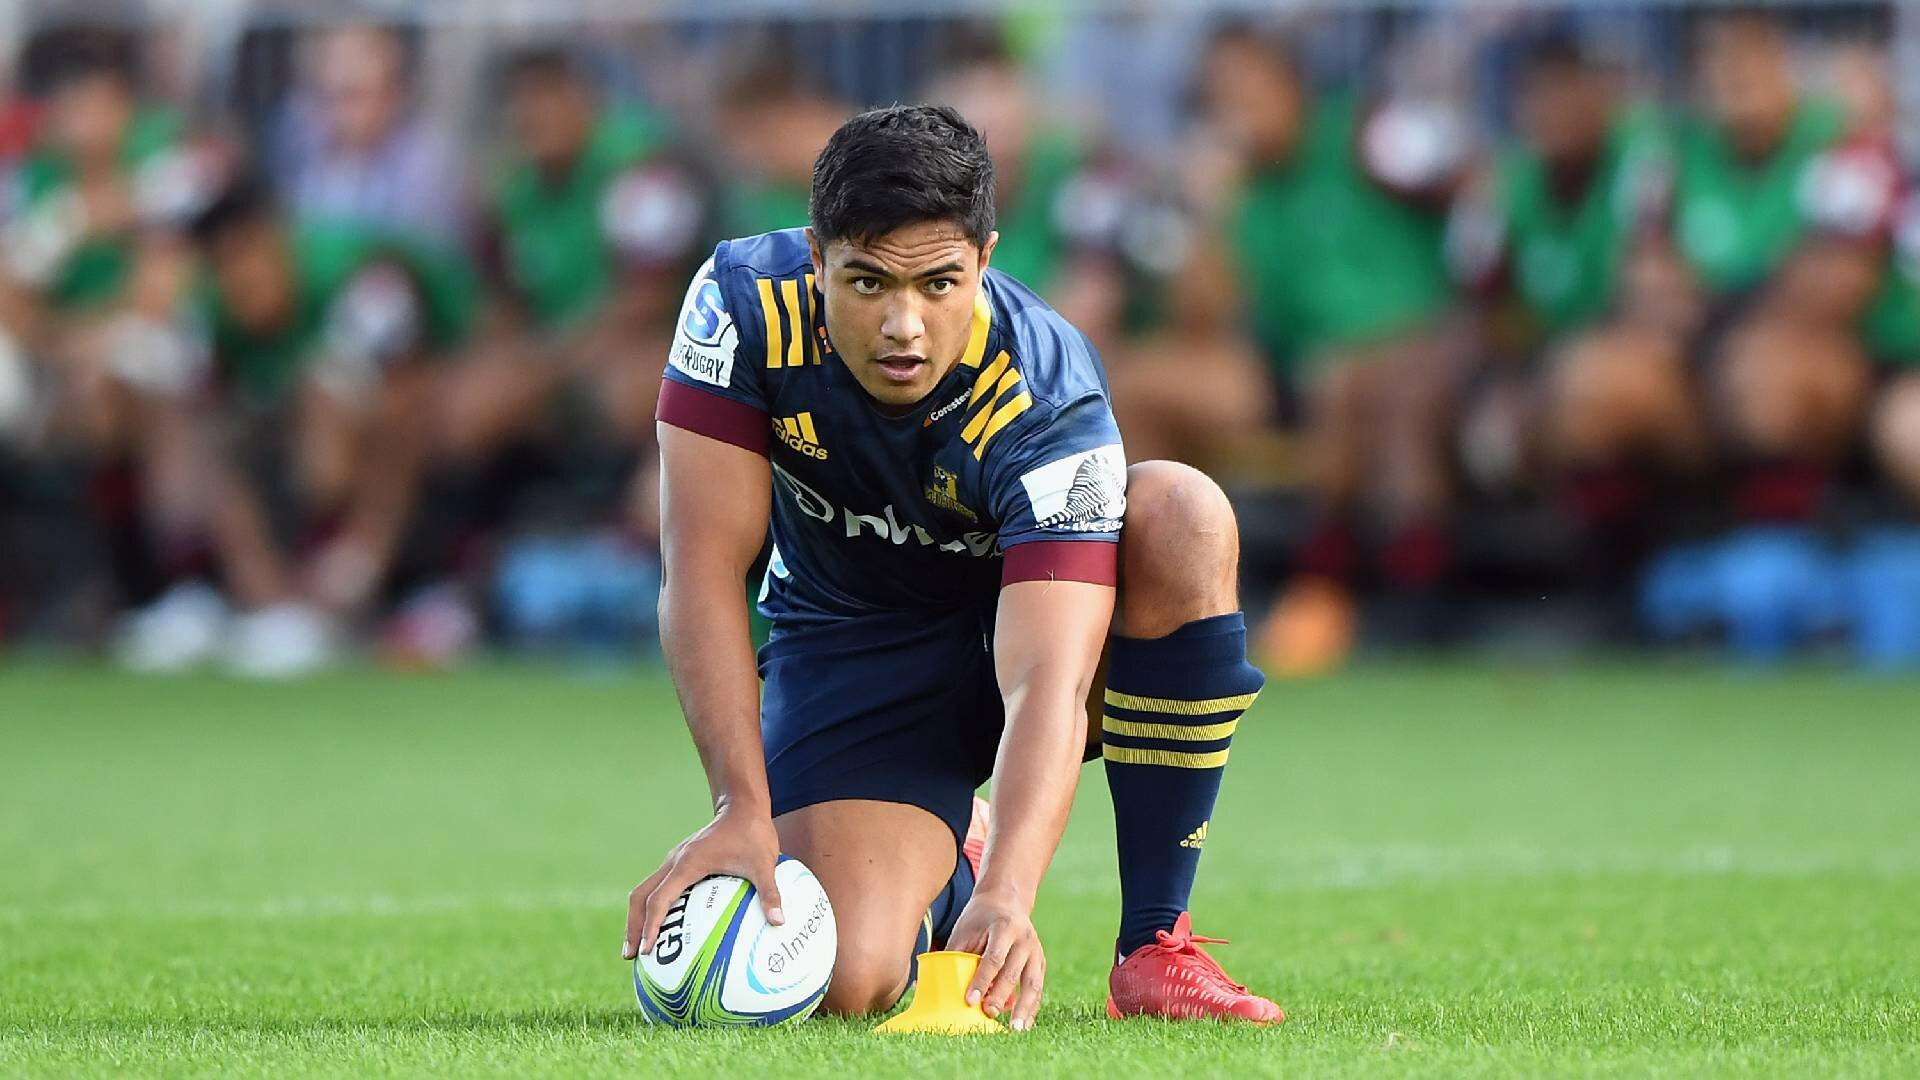 Highlanders optimistic of potential return of All Blacks star following close Blues defeat